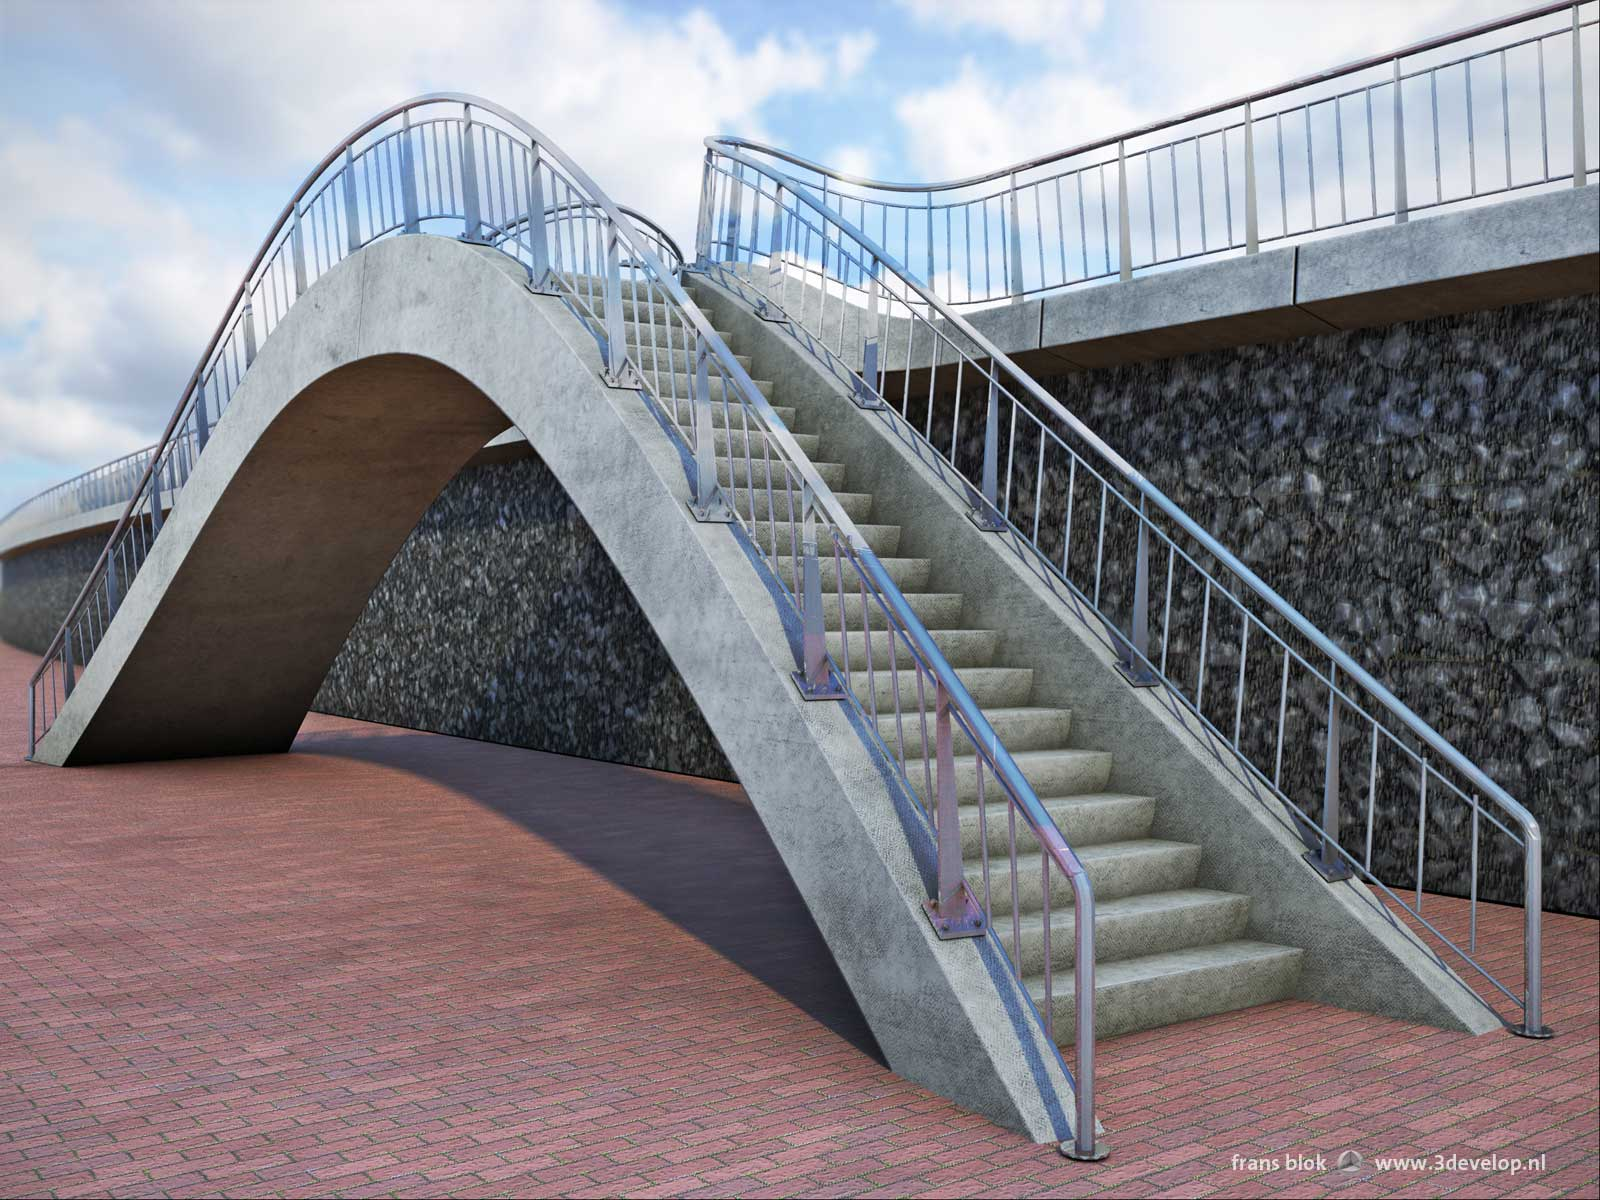 Sea barrier Harlingen - design: Royal HaskoningDHV